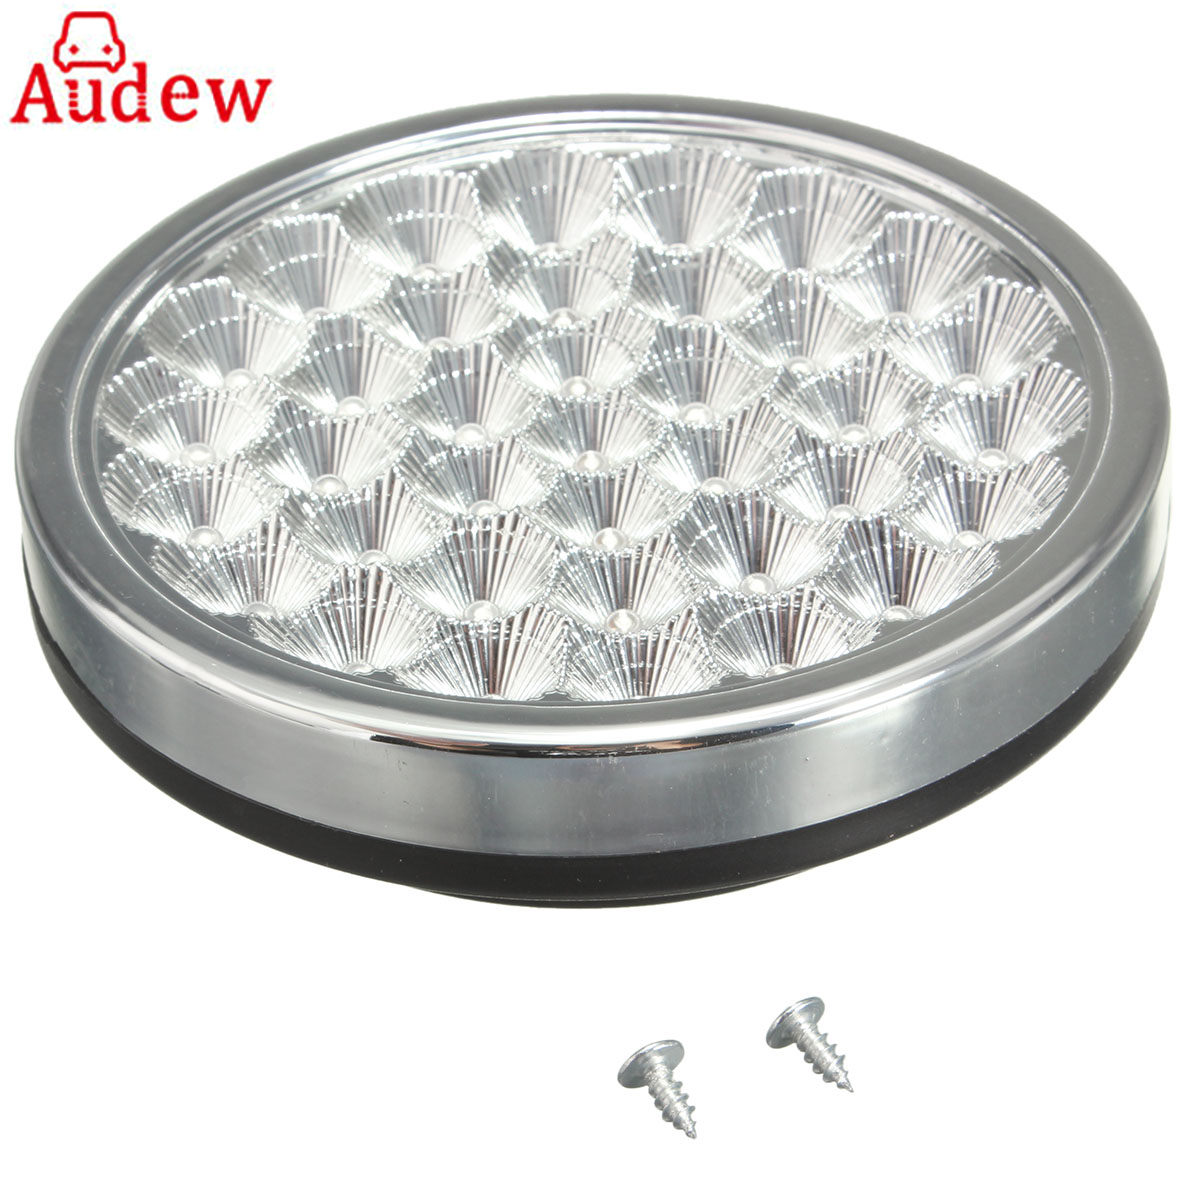 Car Auto LED Interior Indoor Roof Ceiling 37LED Dome Light White Lamp For Car Trailer Taxi Truck RV DC12V guangdian car led light auto interior light kit roof vanity light glove foot trunk cargo lamp t10 festoon for kia ceed 2006 2015